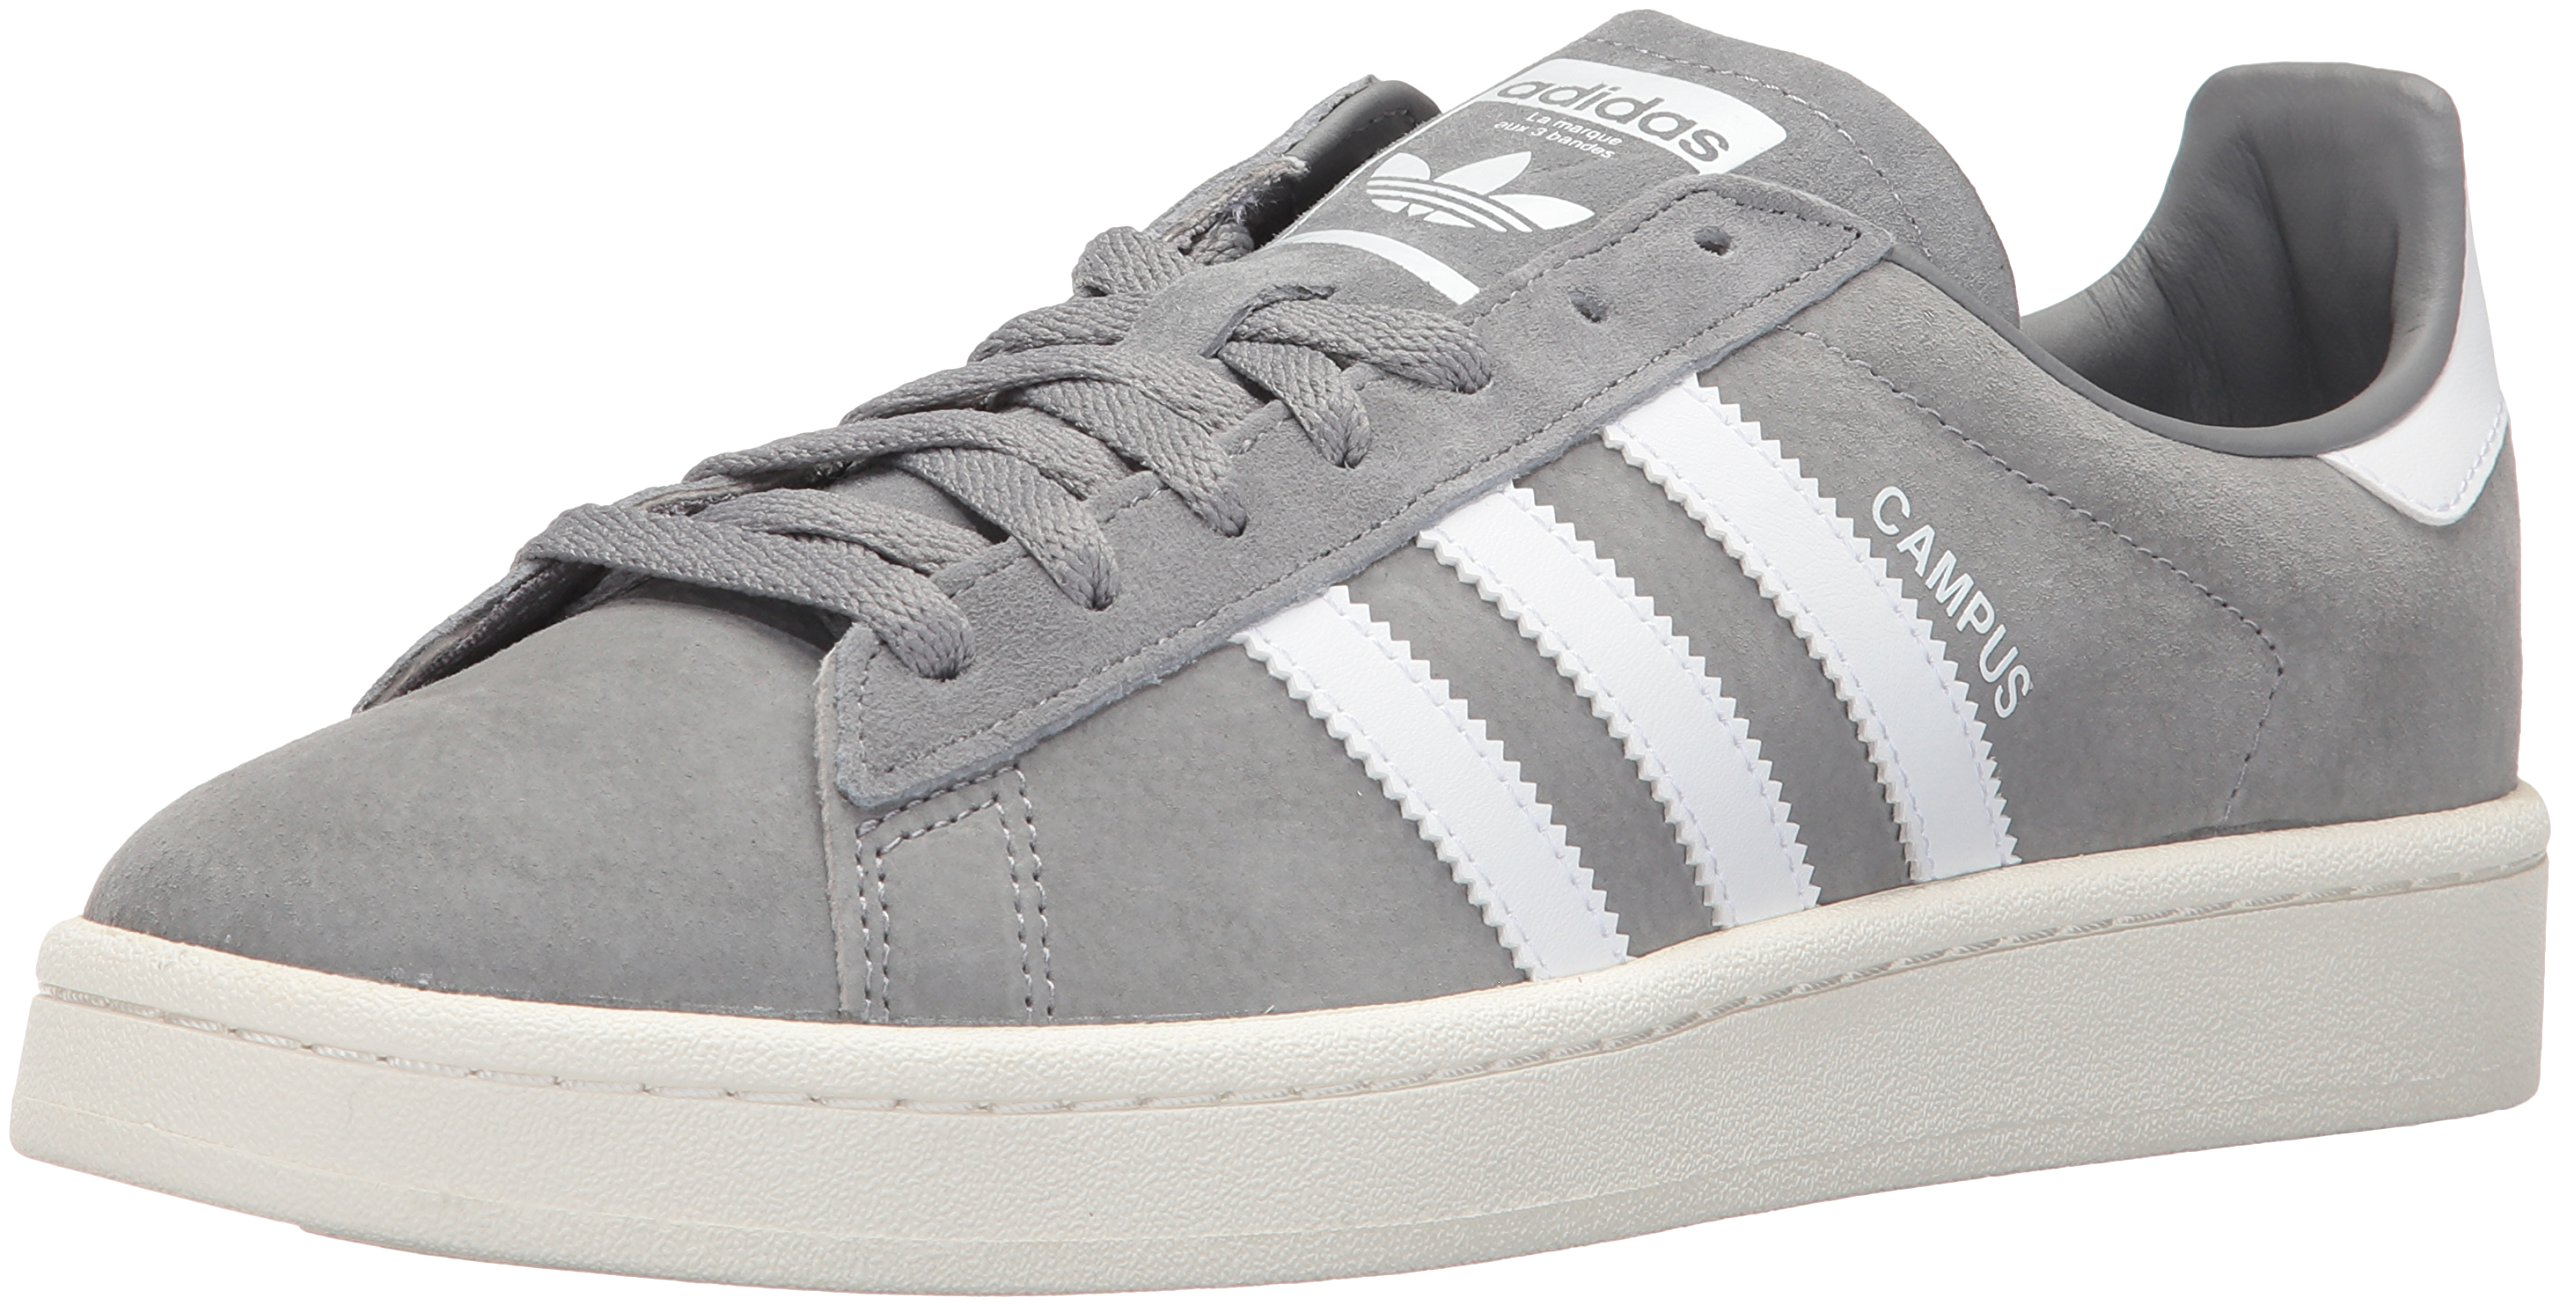 Adidas Men's Campus Sneakers, Grey Three/White/Chalk White, (10.5 M US)